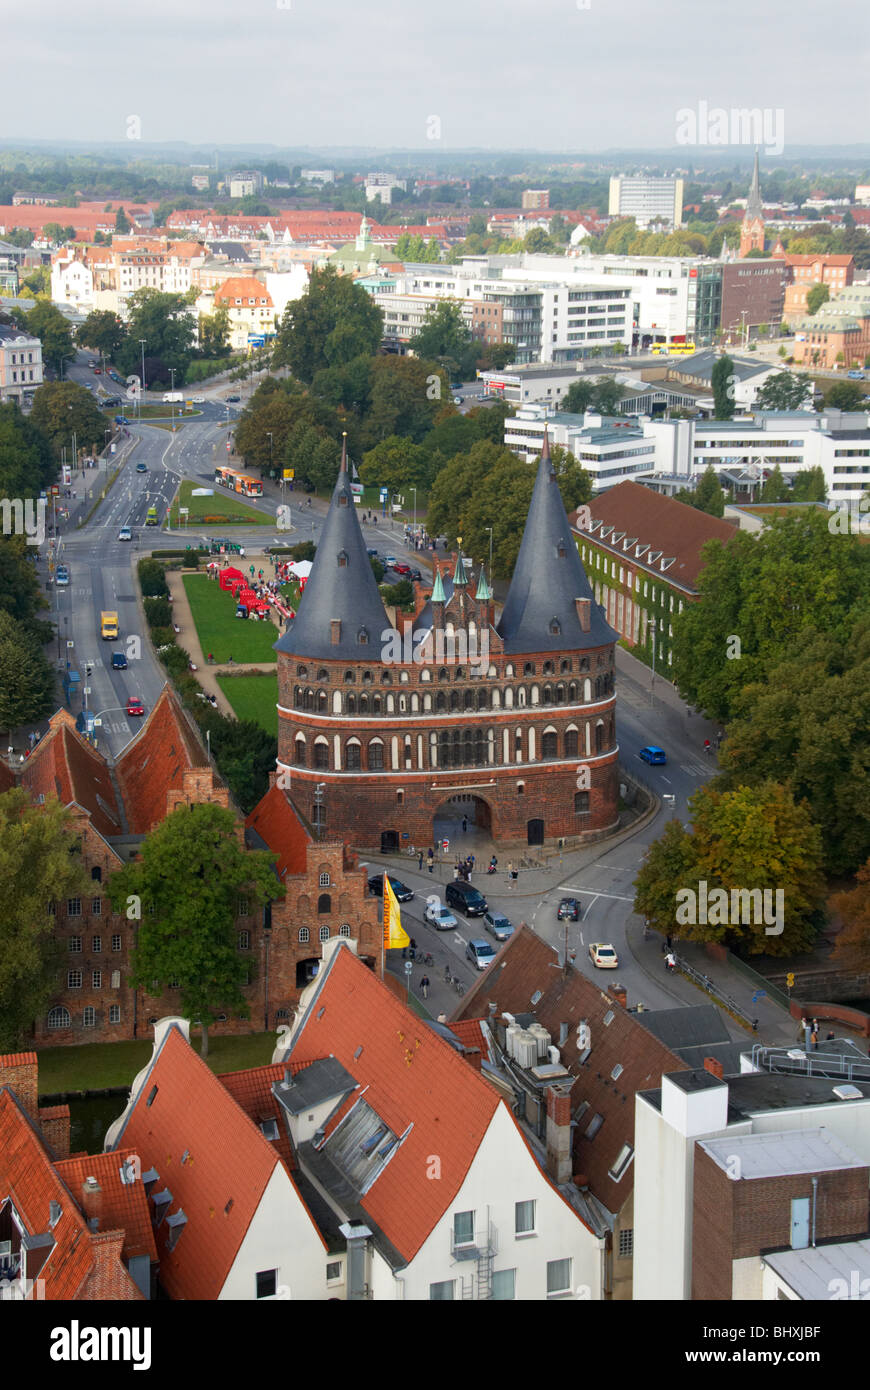 arial view of Lubeck - Stock Image